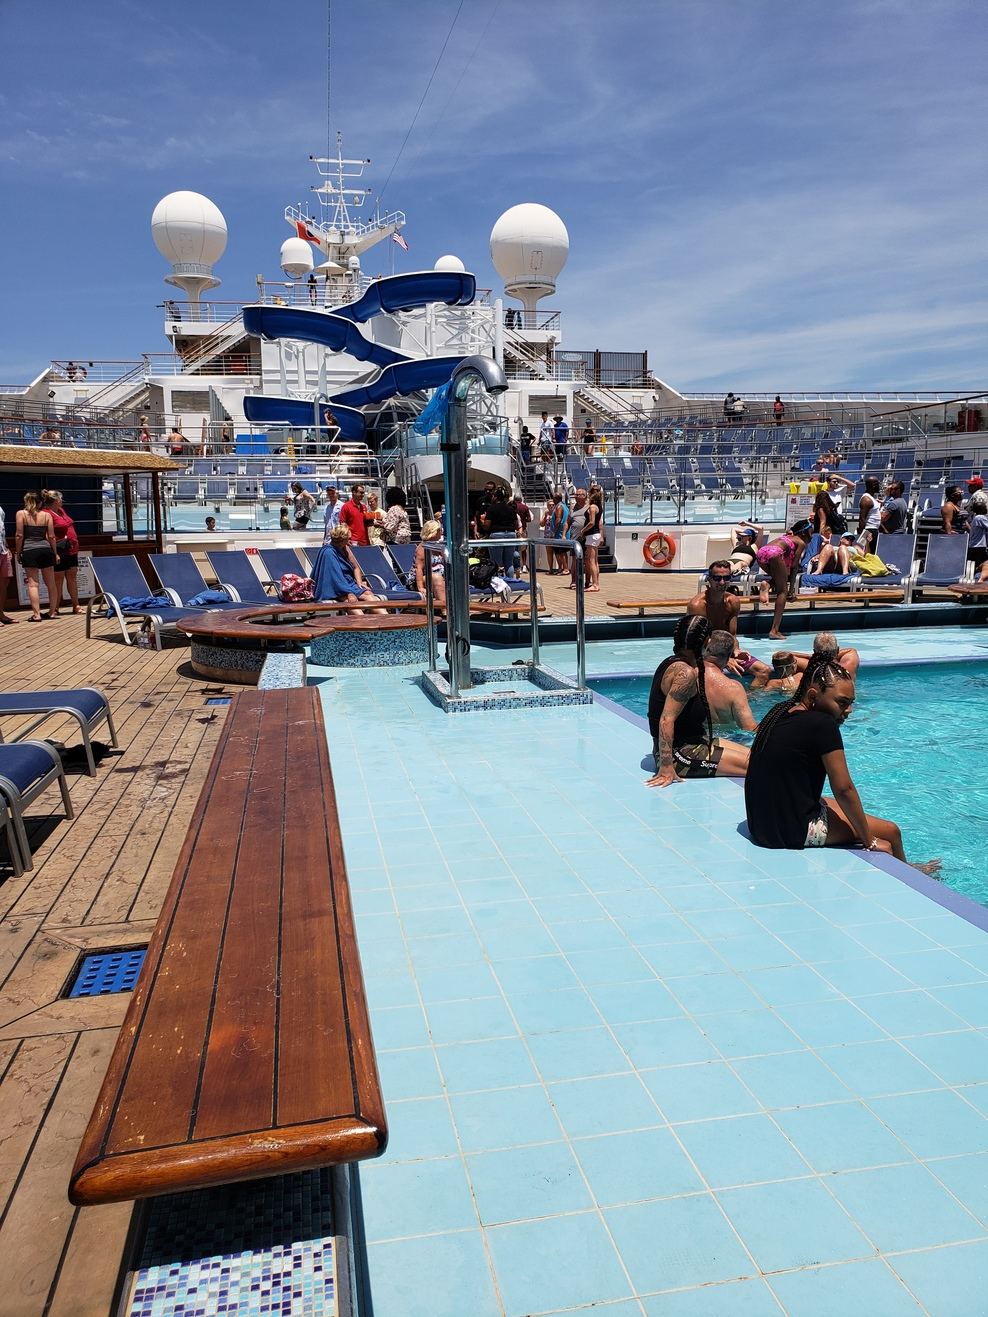 Photo Of The Entire Plant Of Dog Fennel Eupatorium: Pool, Spa, Fitness On Carnival Conquest Cruise Ship